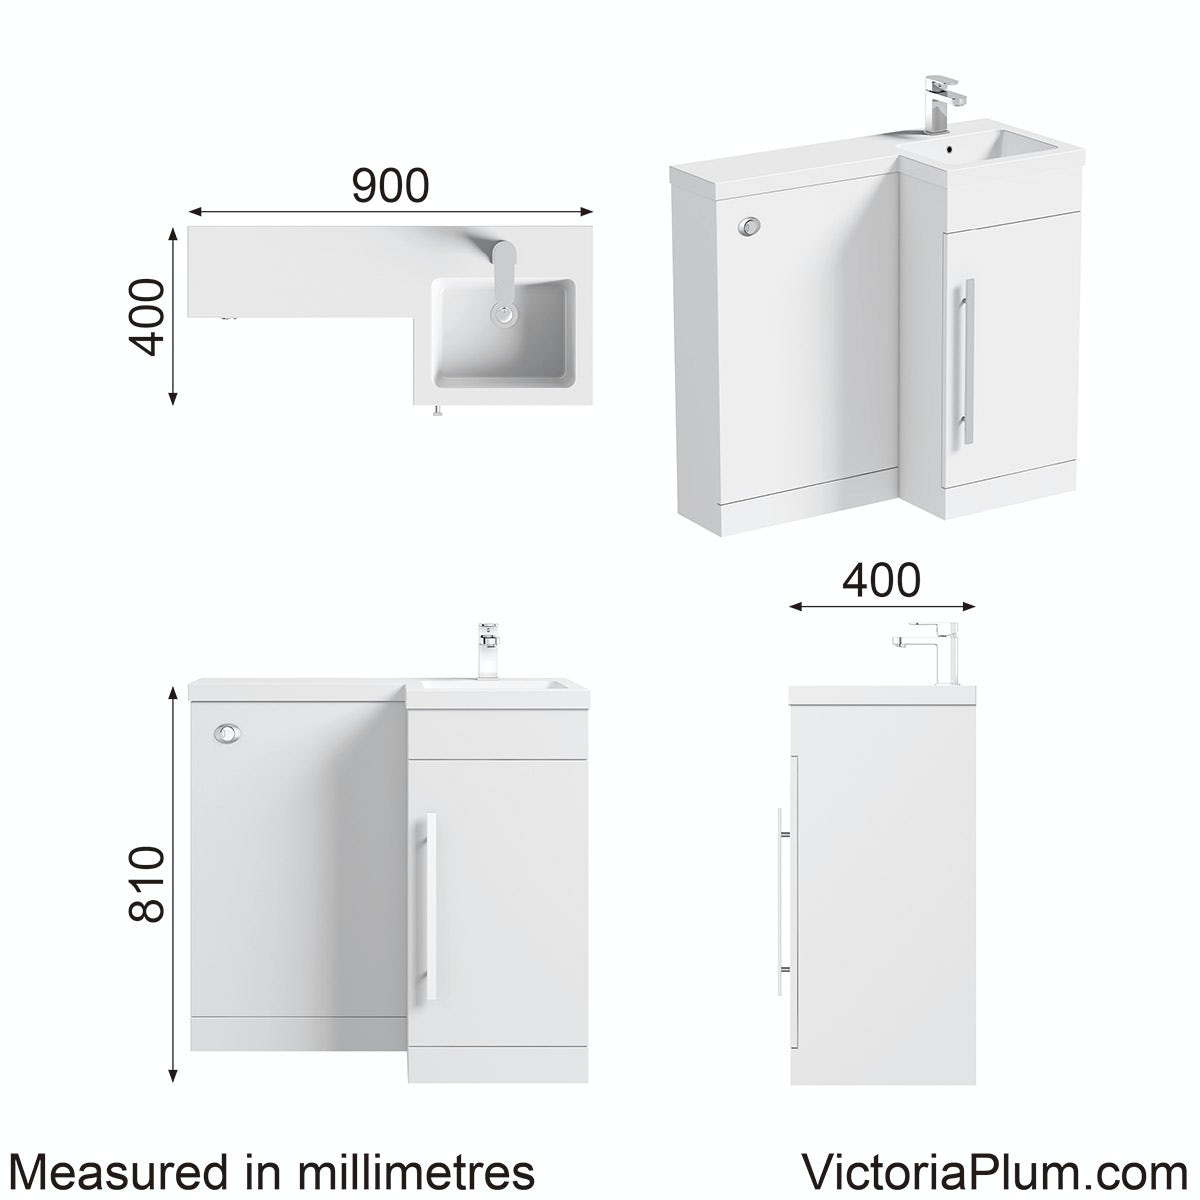 Dimensions for Orchard MySpace white right handed unit including concealed cistern